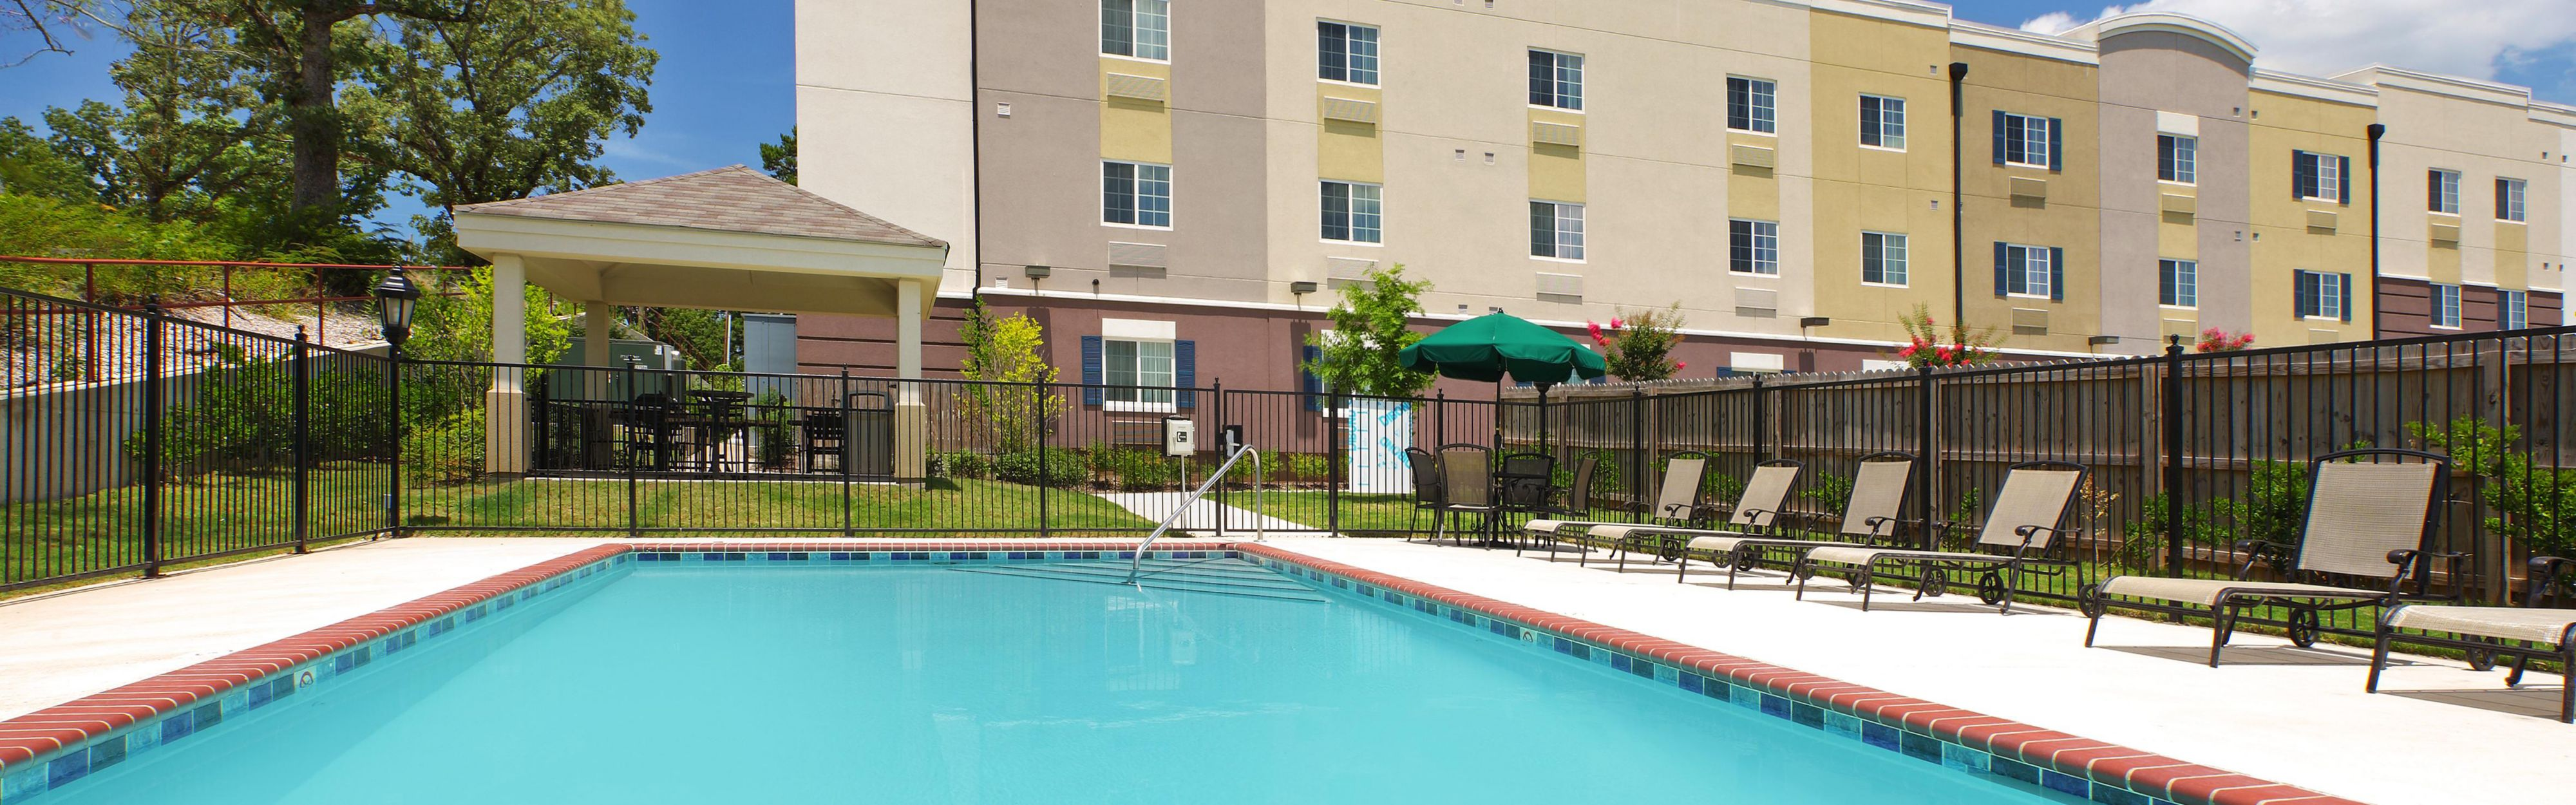 Candlewood Suites Hot Springs image 2